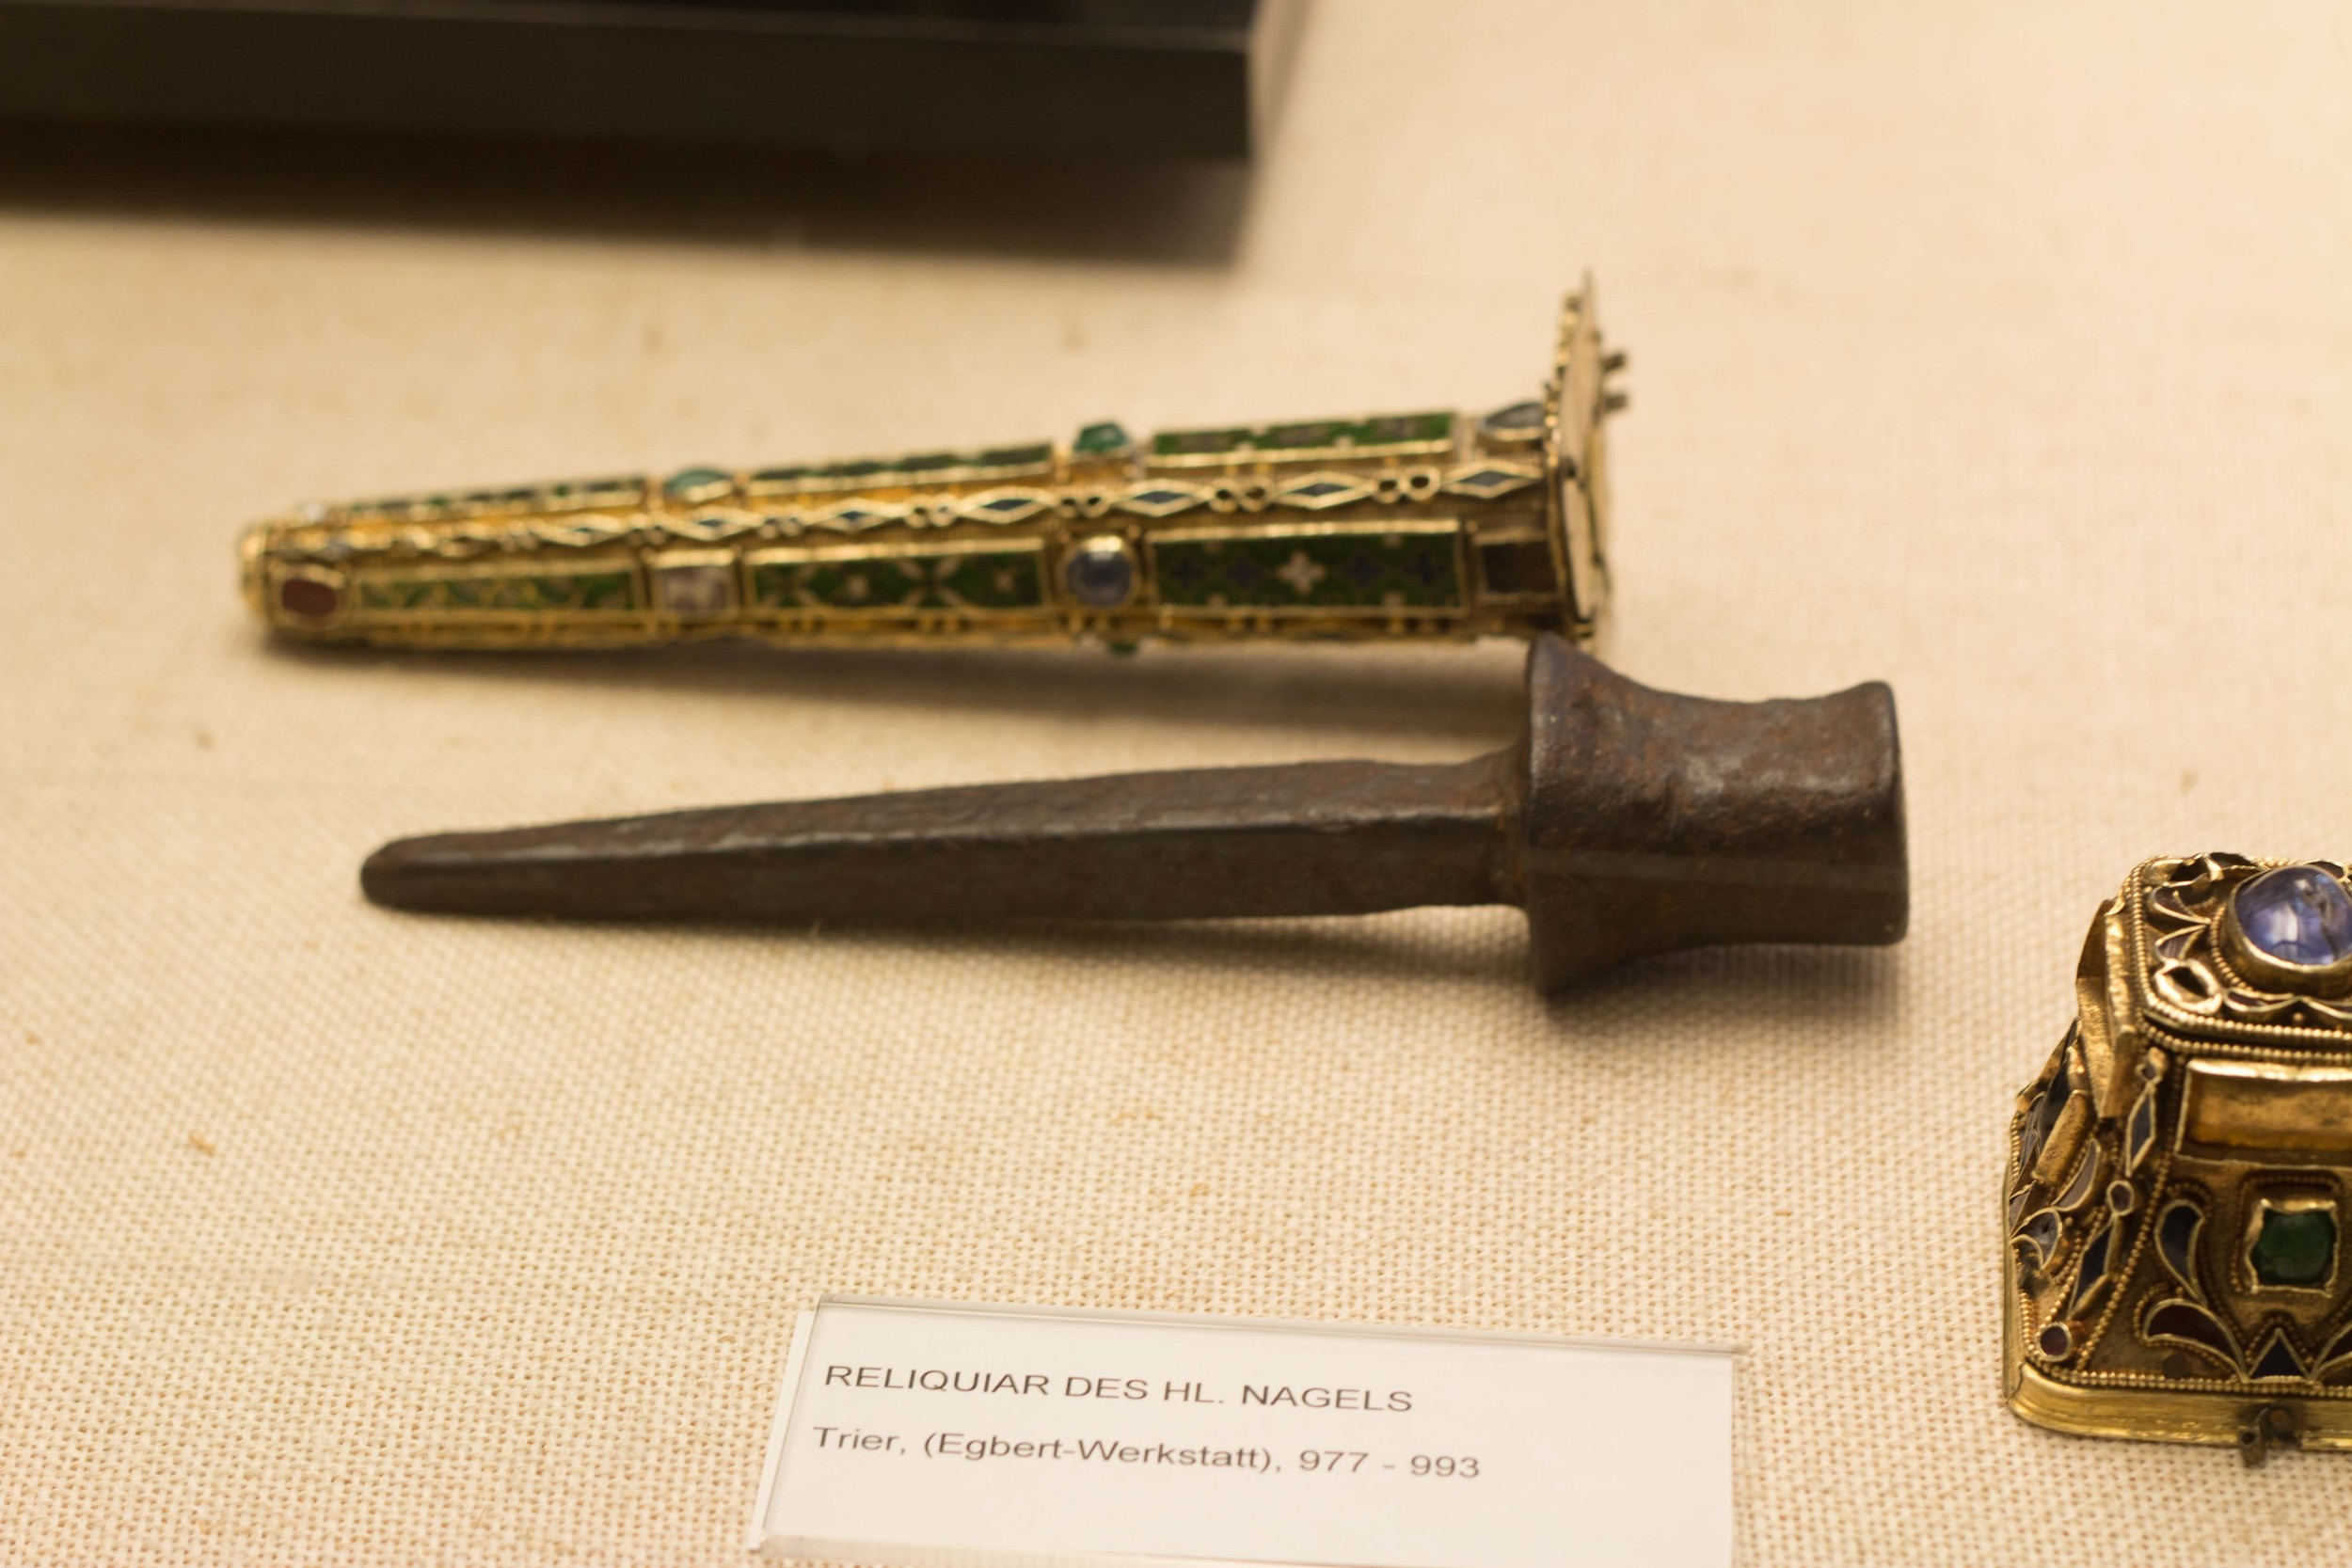 One of the nails used to nail Jesus to the cross.